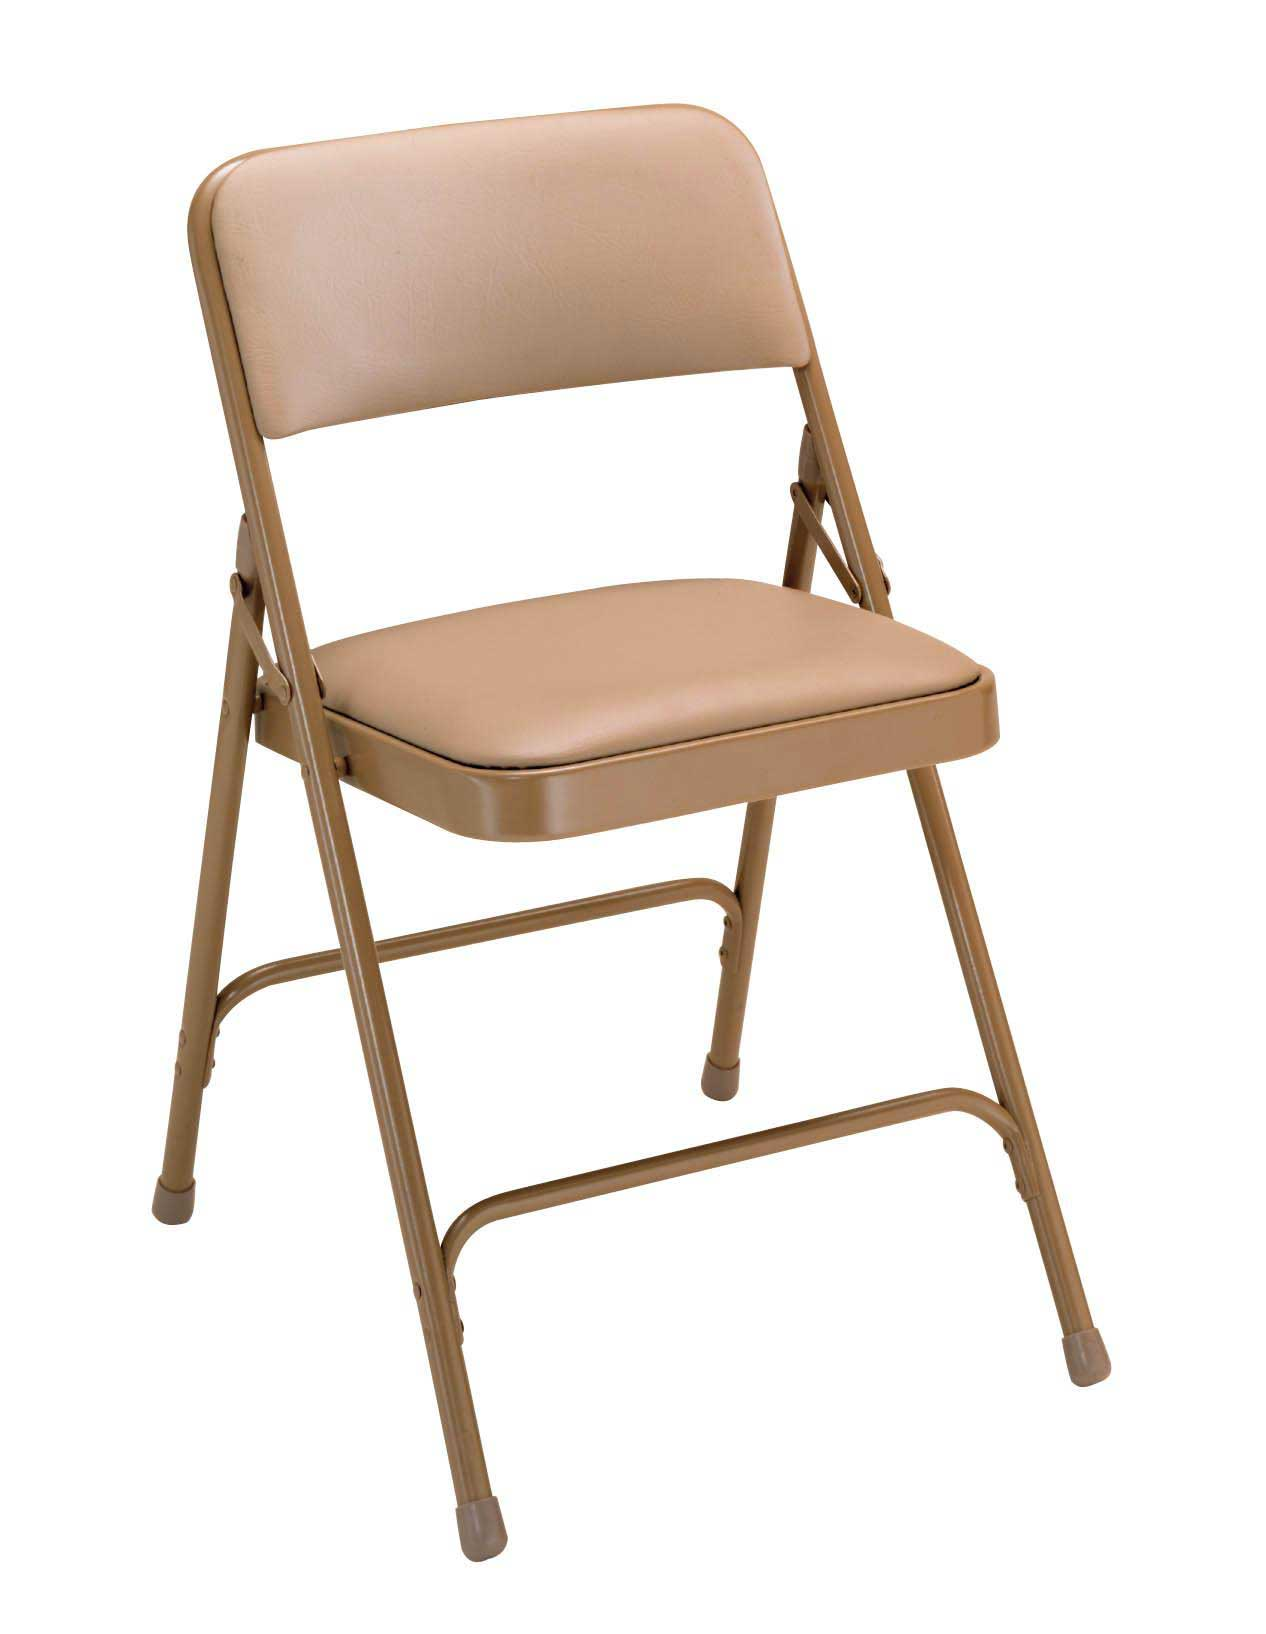 Folding Padded Chairs Style And Design